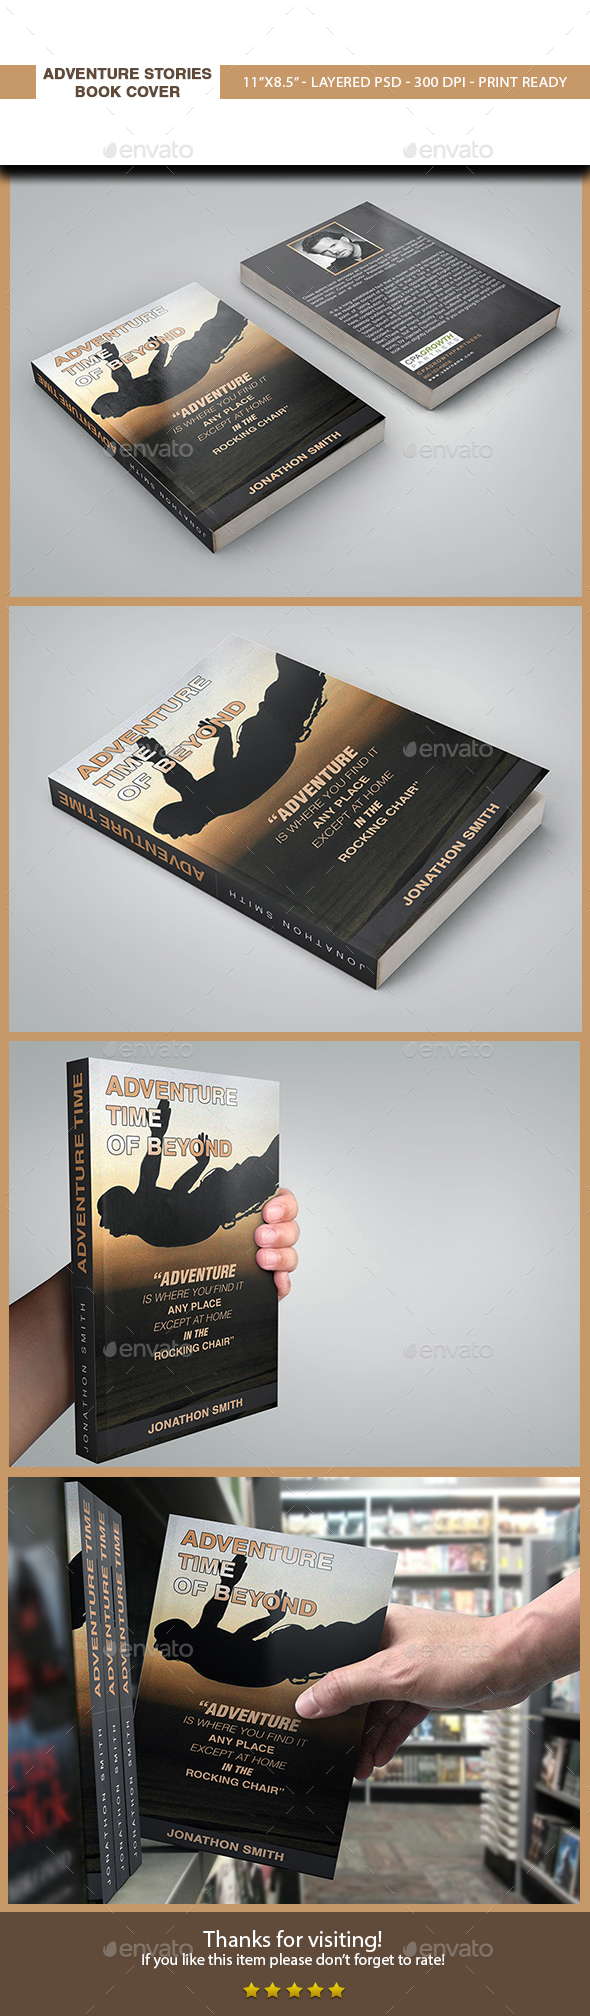 Adventure Stories Book Cover. - Miscellaneous Print Templates